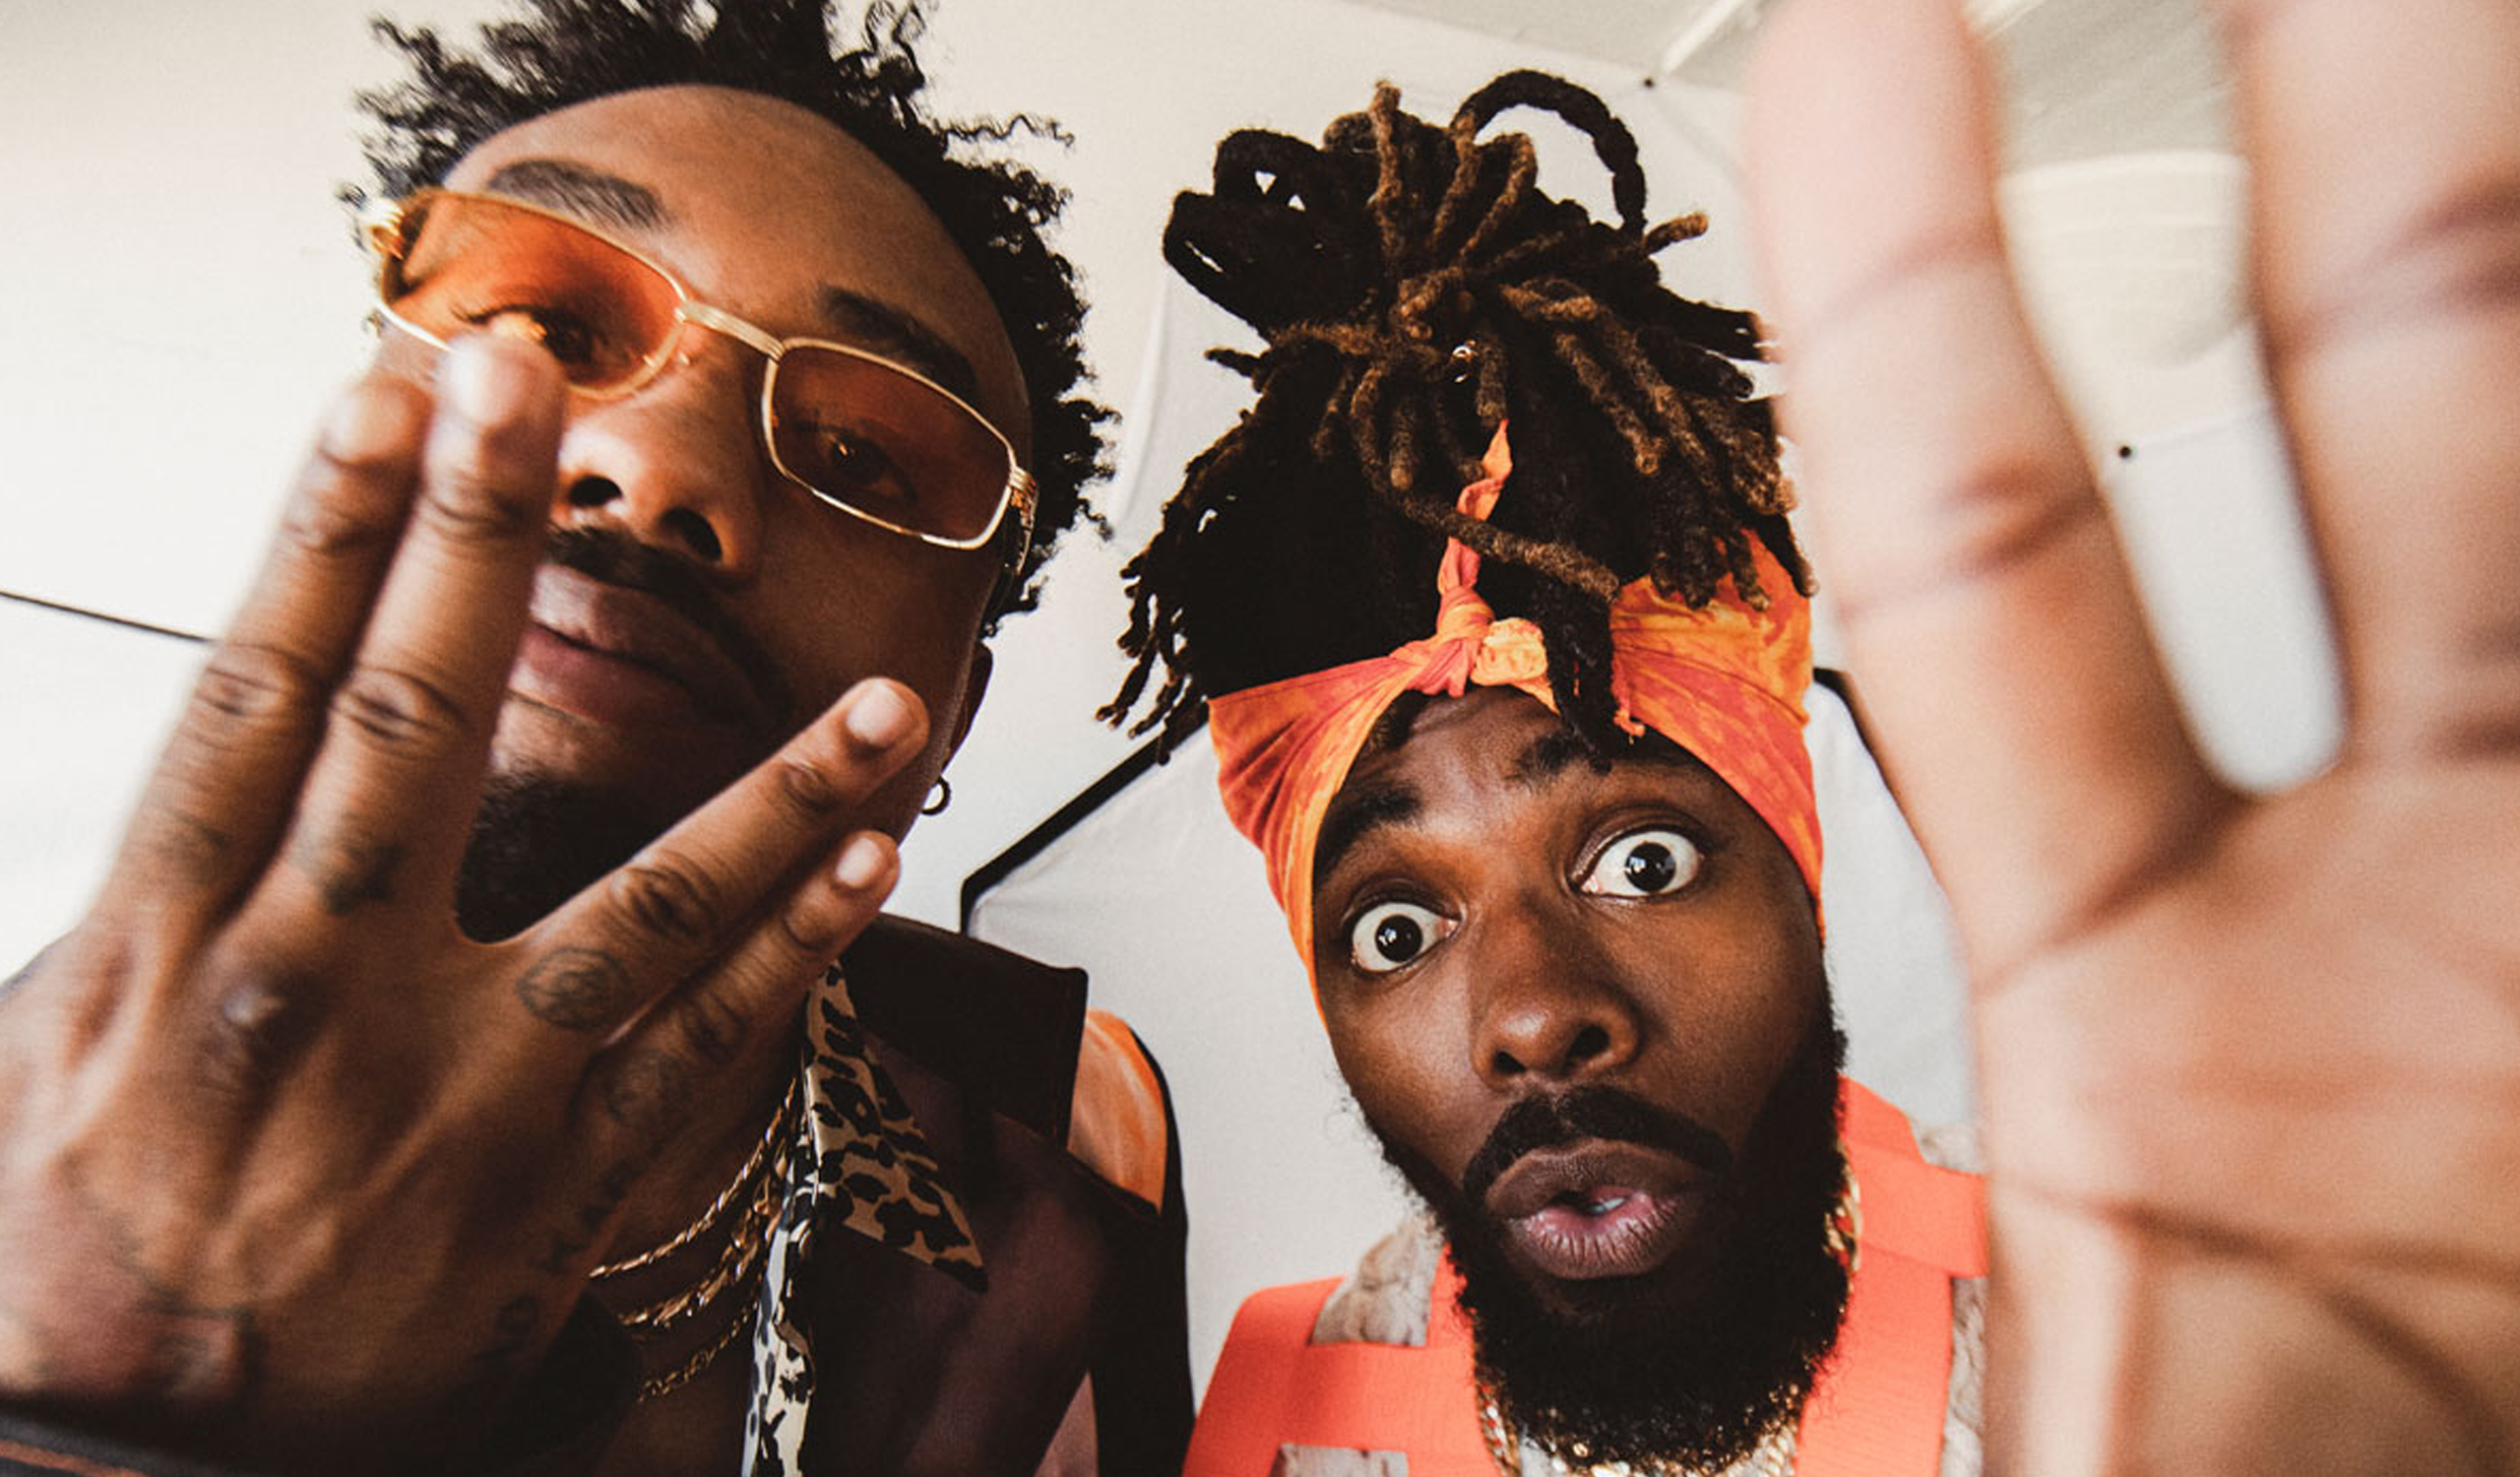 IMANI BEPAALT earthgang in underrated